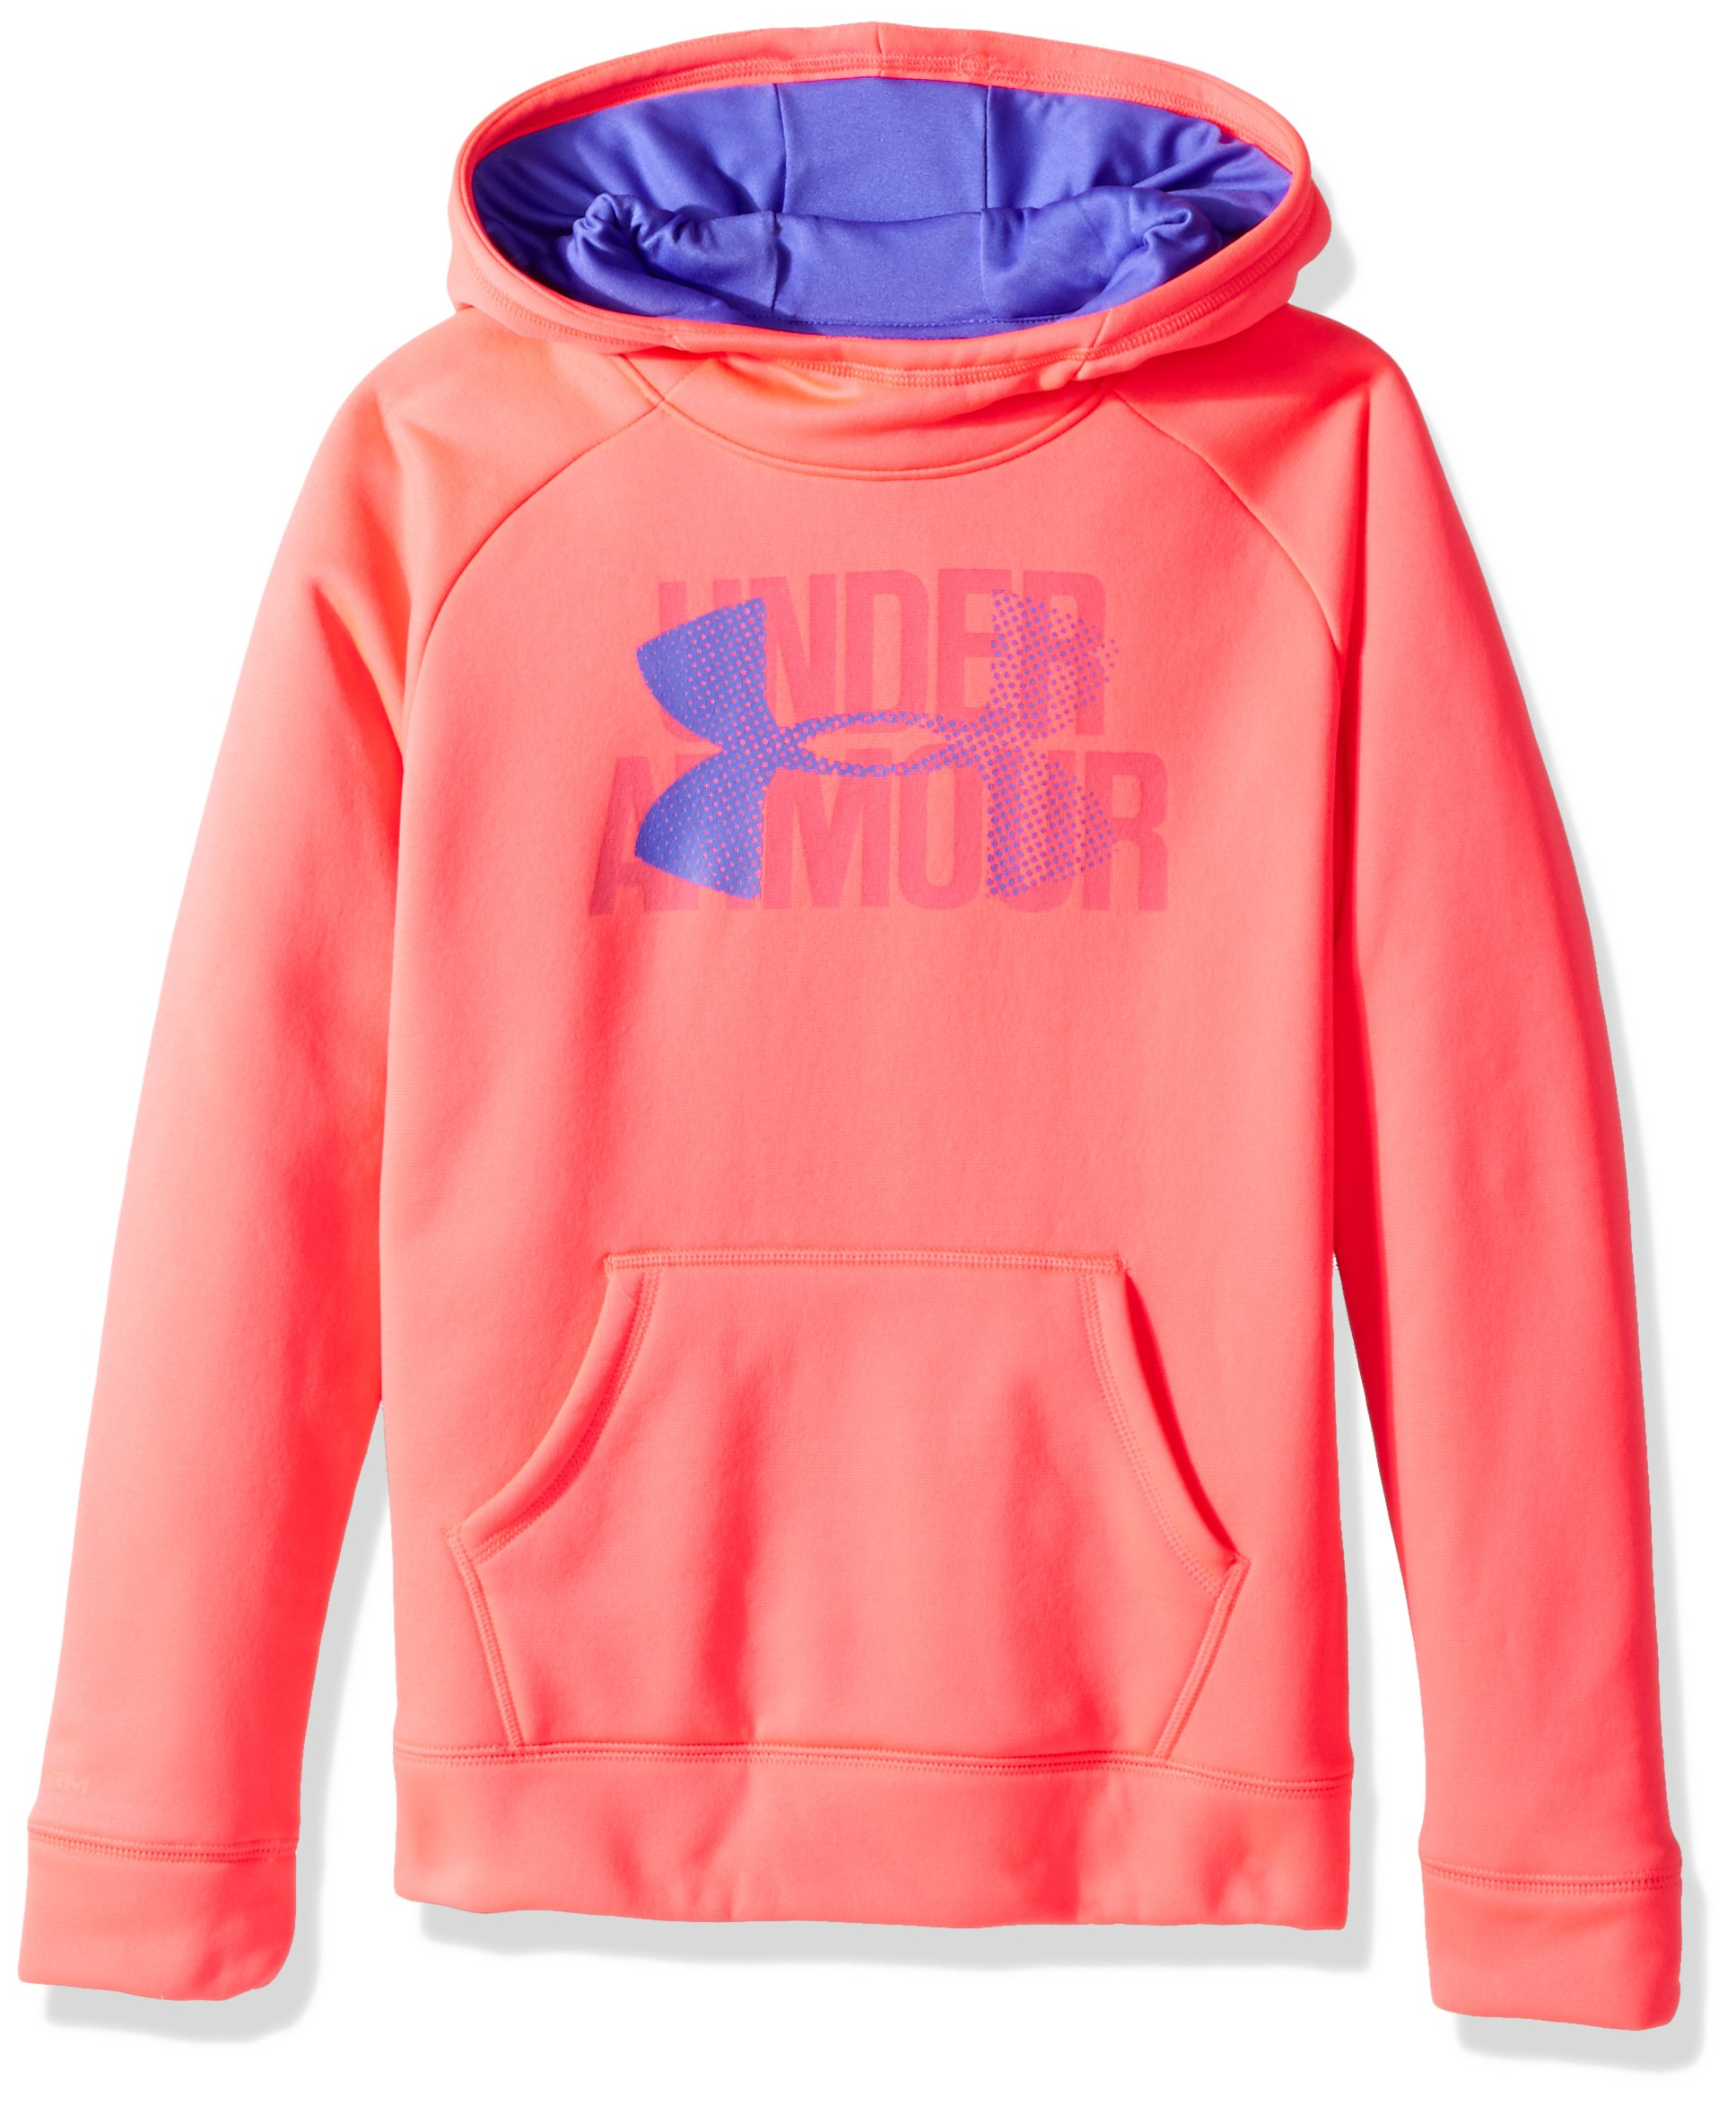 Under Armour Girls' Armour Fleece Big Logo Hoodie, Penta Pink , Youth Small by Under Armour